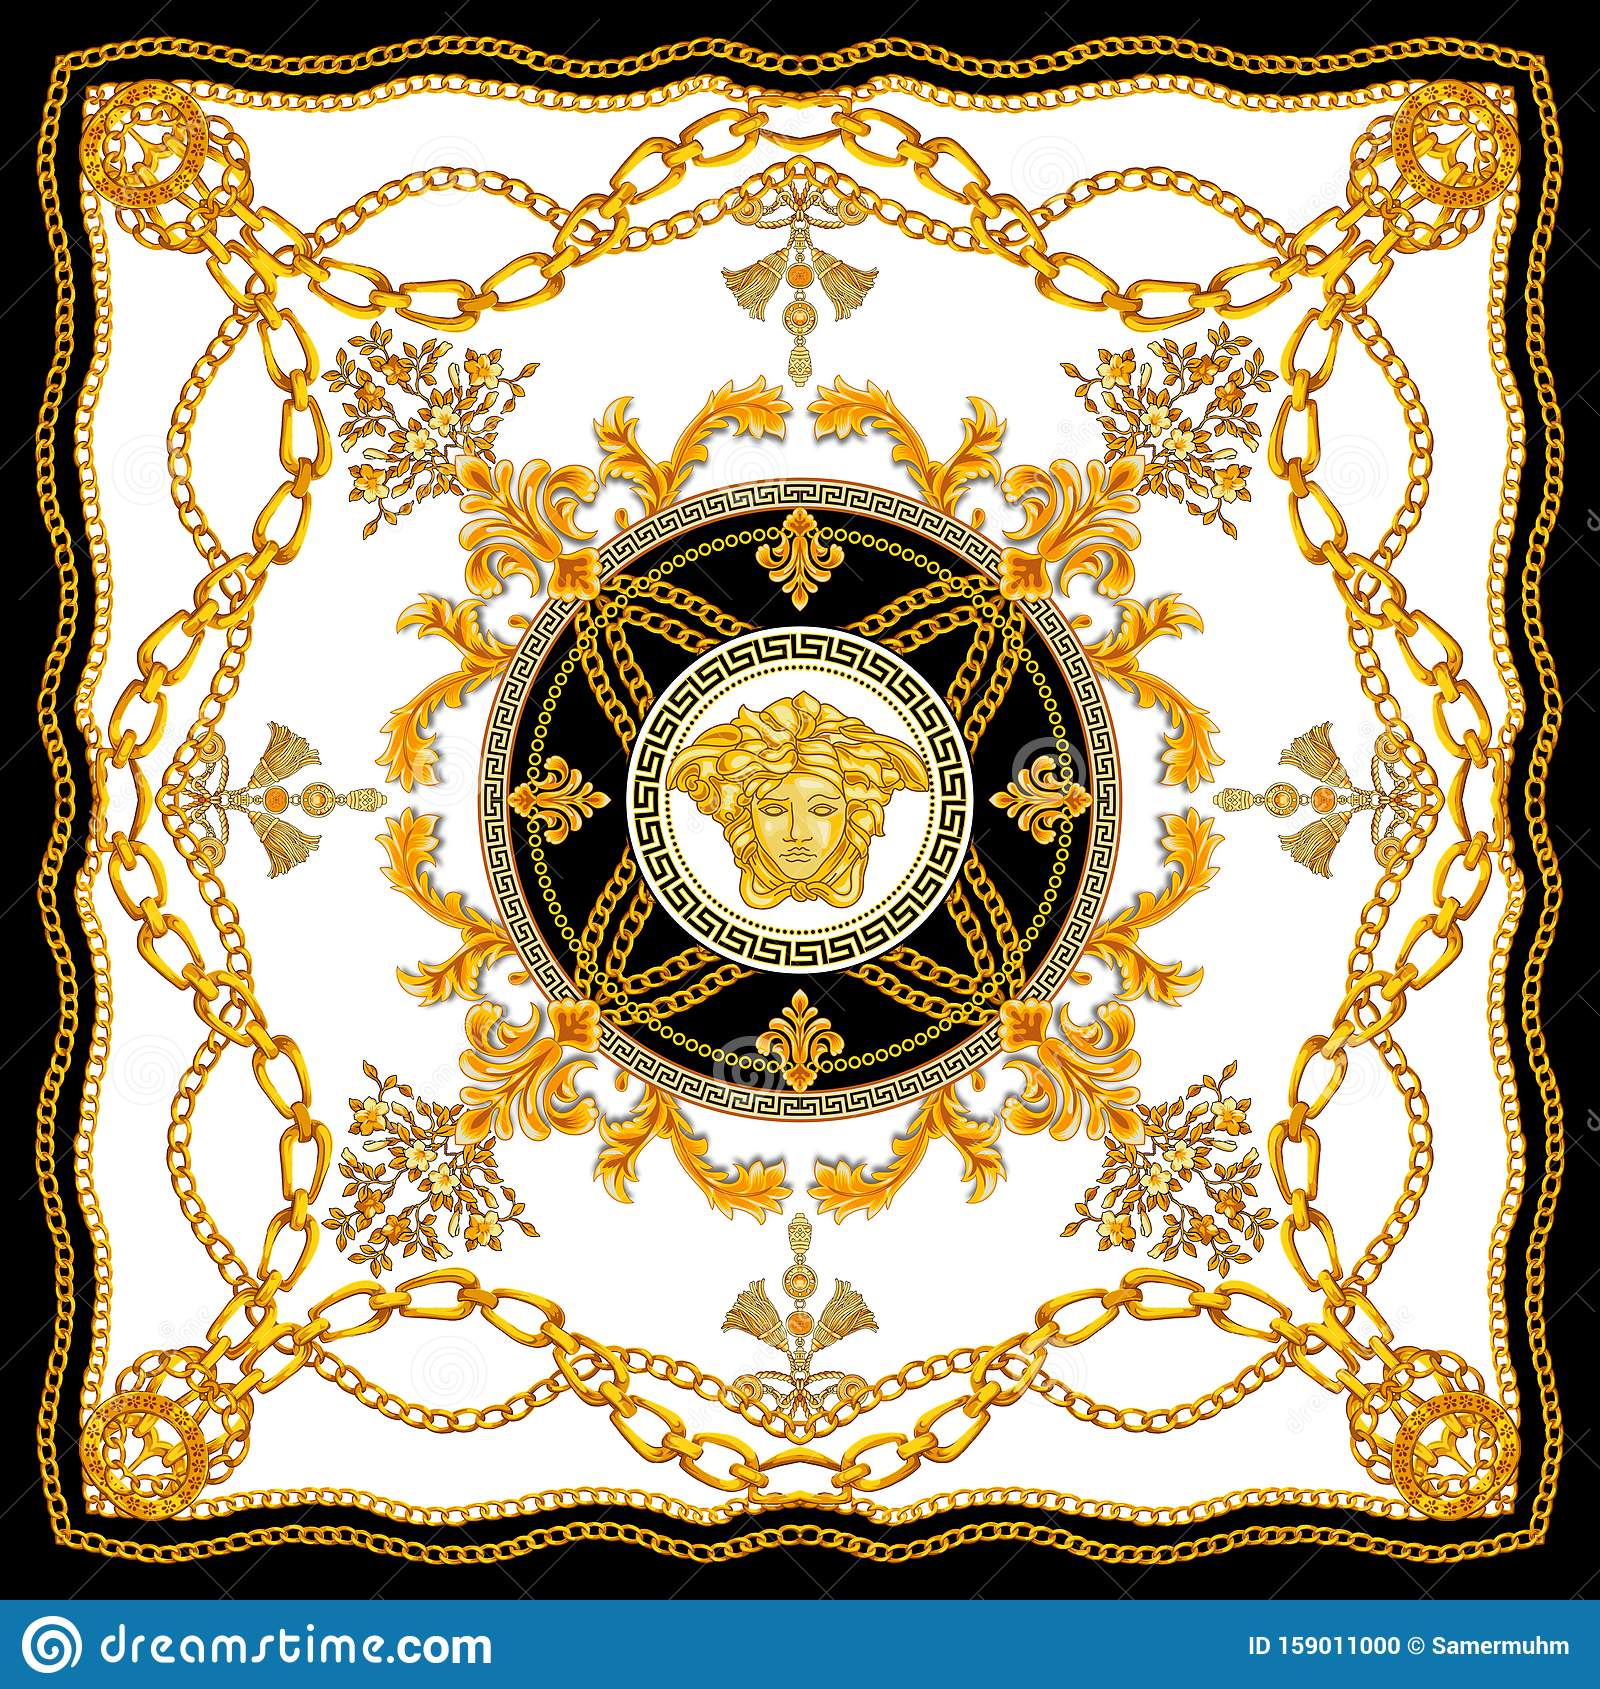 Golden Baroque With Chains On White Background Versace Style